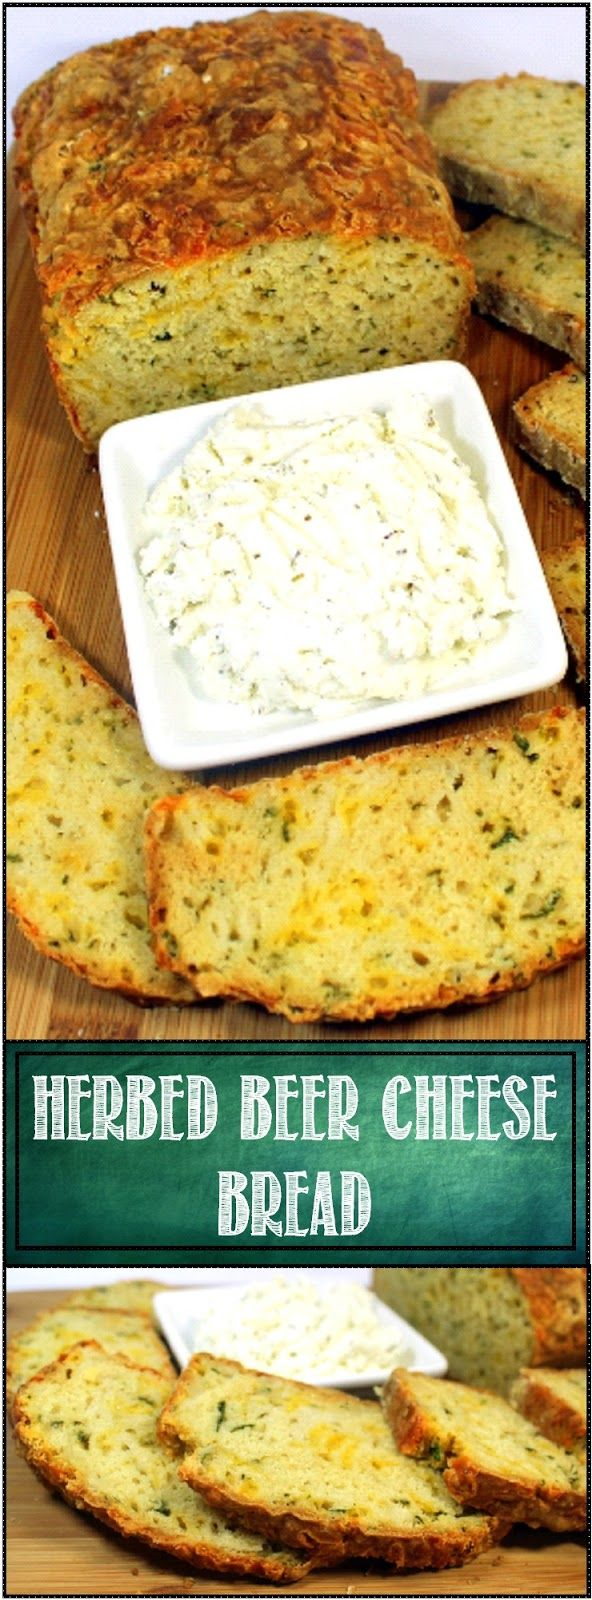 Herb Cheese Beer Bread - The Easiest of all Breads And indeed, beer bread is the easiest of all breads to make. And this one is LOADED with herbal hints and the fantastic Beer and Cheddar combination!